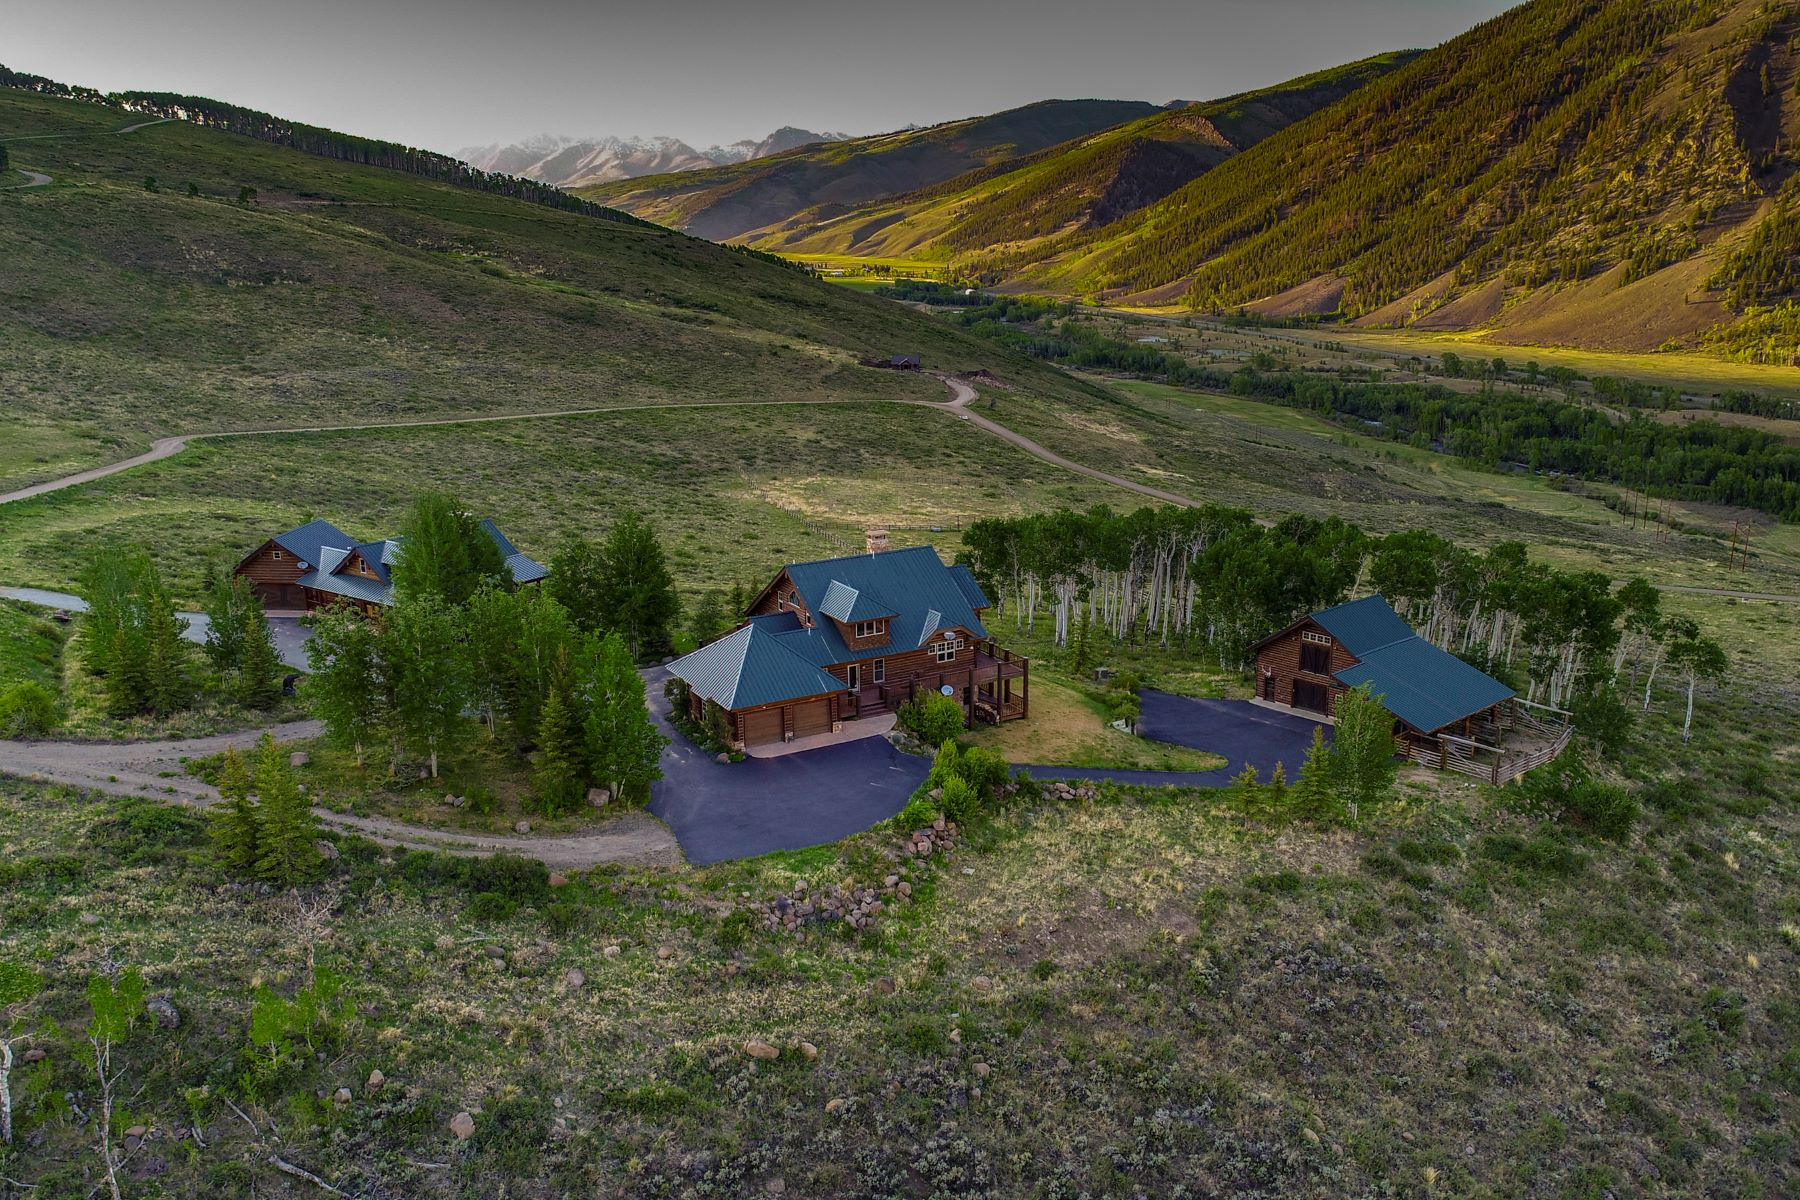 Single Family Home for Active at Remarkable Retreat in Danni Ranch 590 Red Mountain Road Almont, Colorado 81220 United States